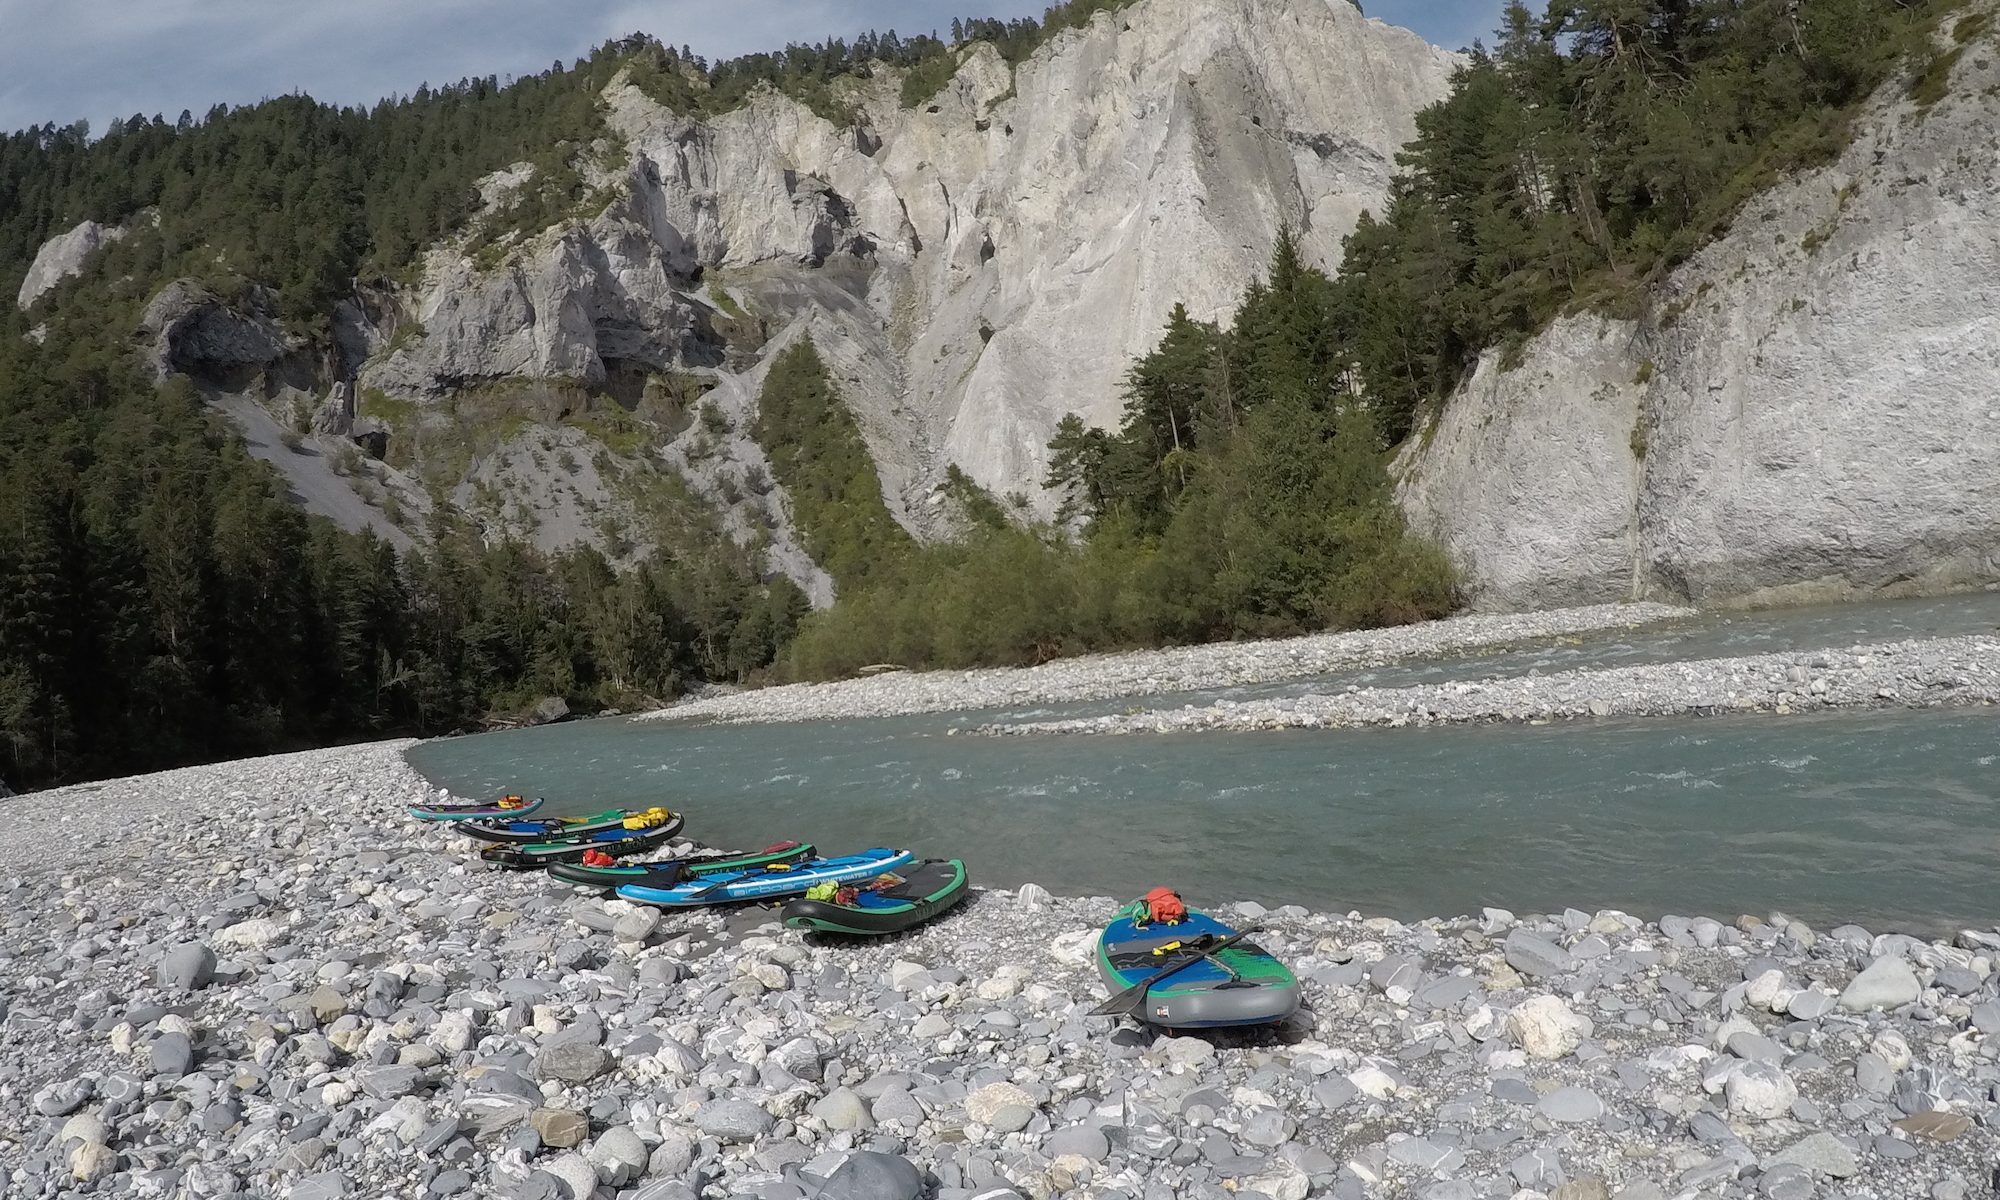 WhiteWater SUP Instructors Meet-Up